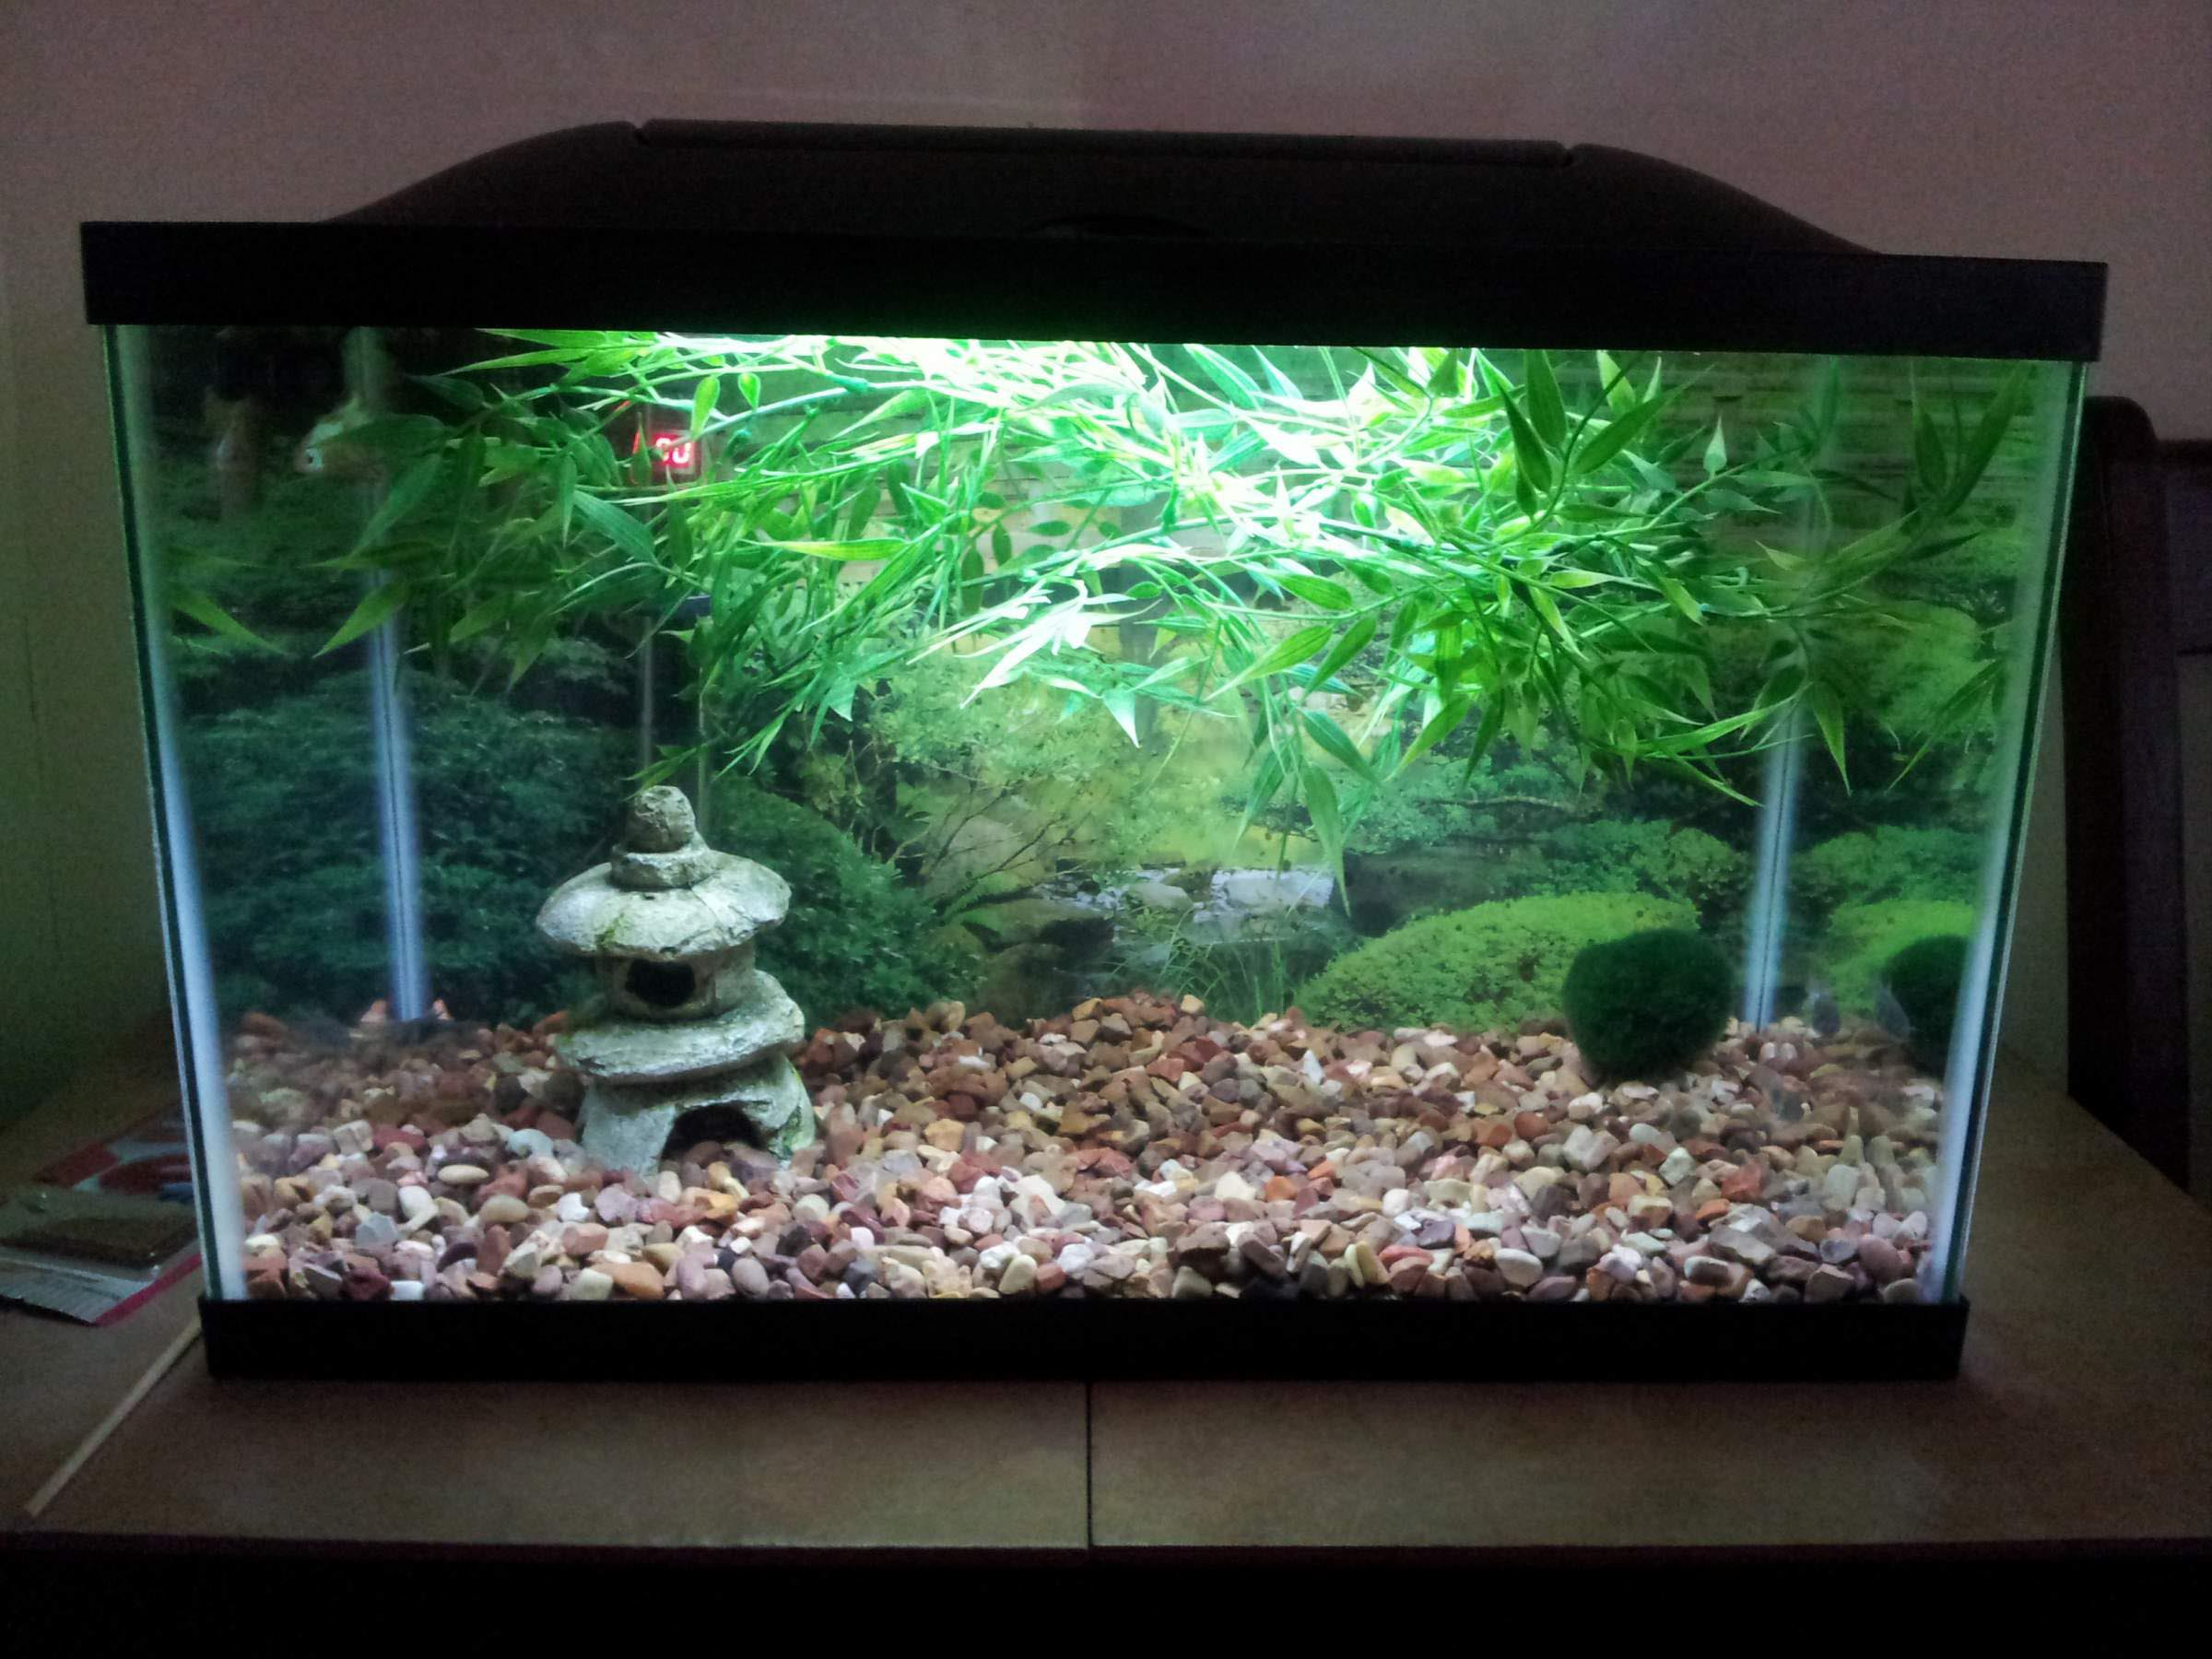 Fish aquarium decorations 28 images fish tank for Fish tank decorations cheap